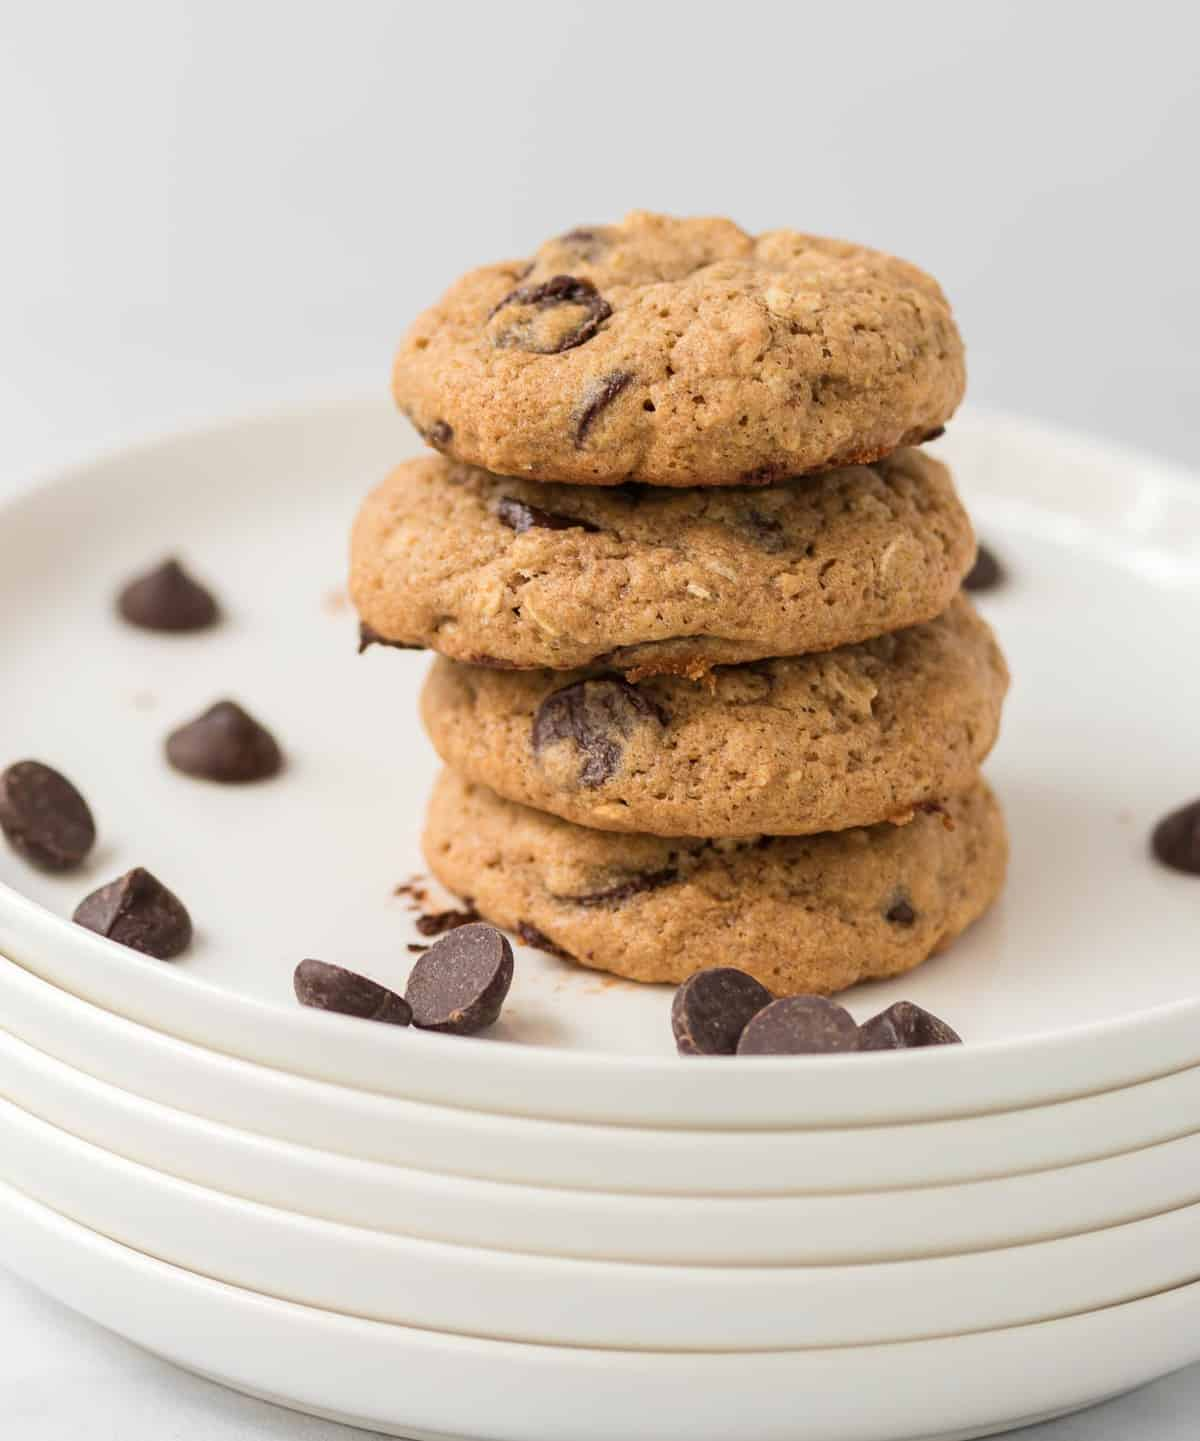 four whole wheat chocolate chip cookies stacked on a white plate